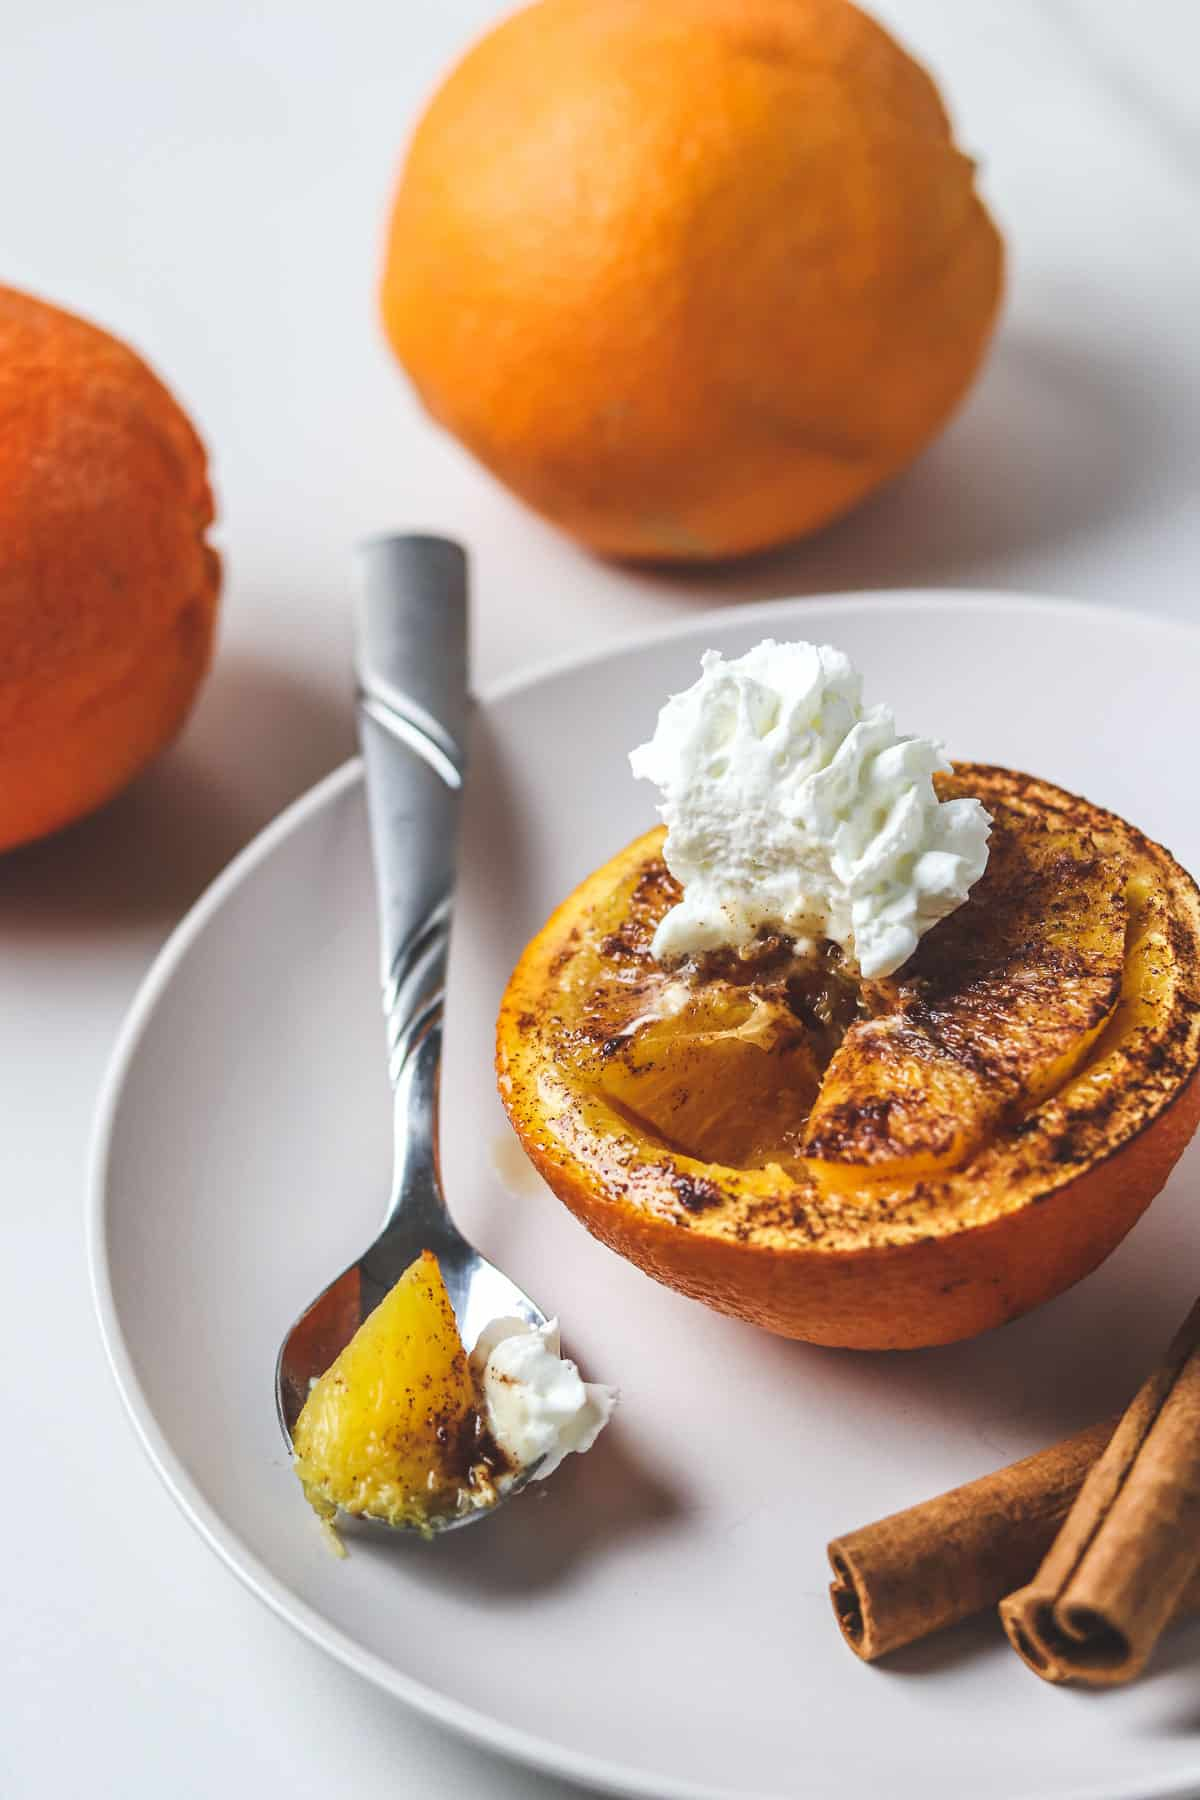 baked orange topped with whipped cream